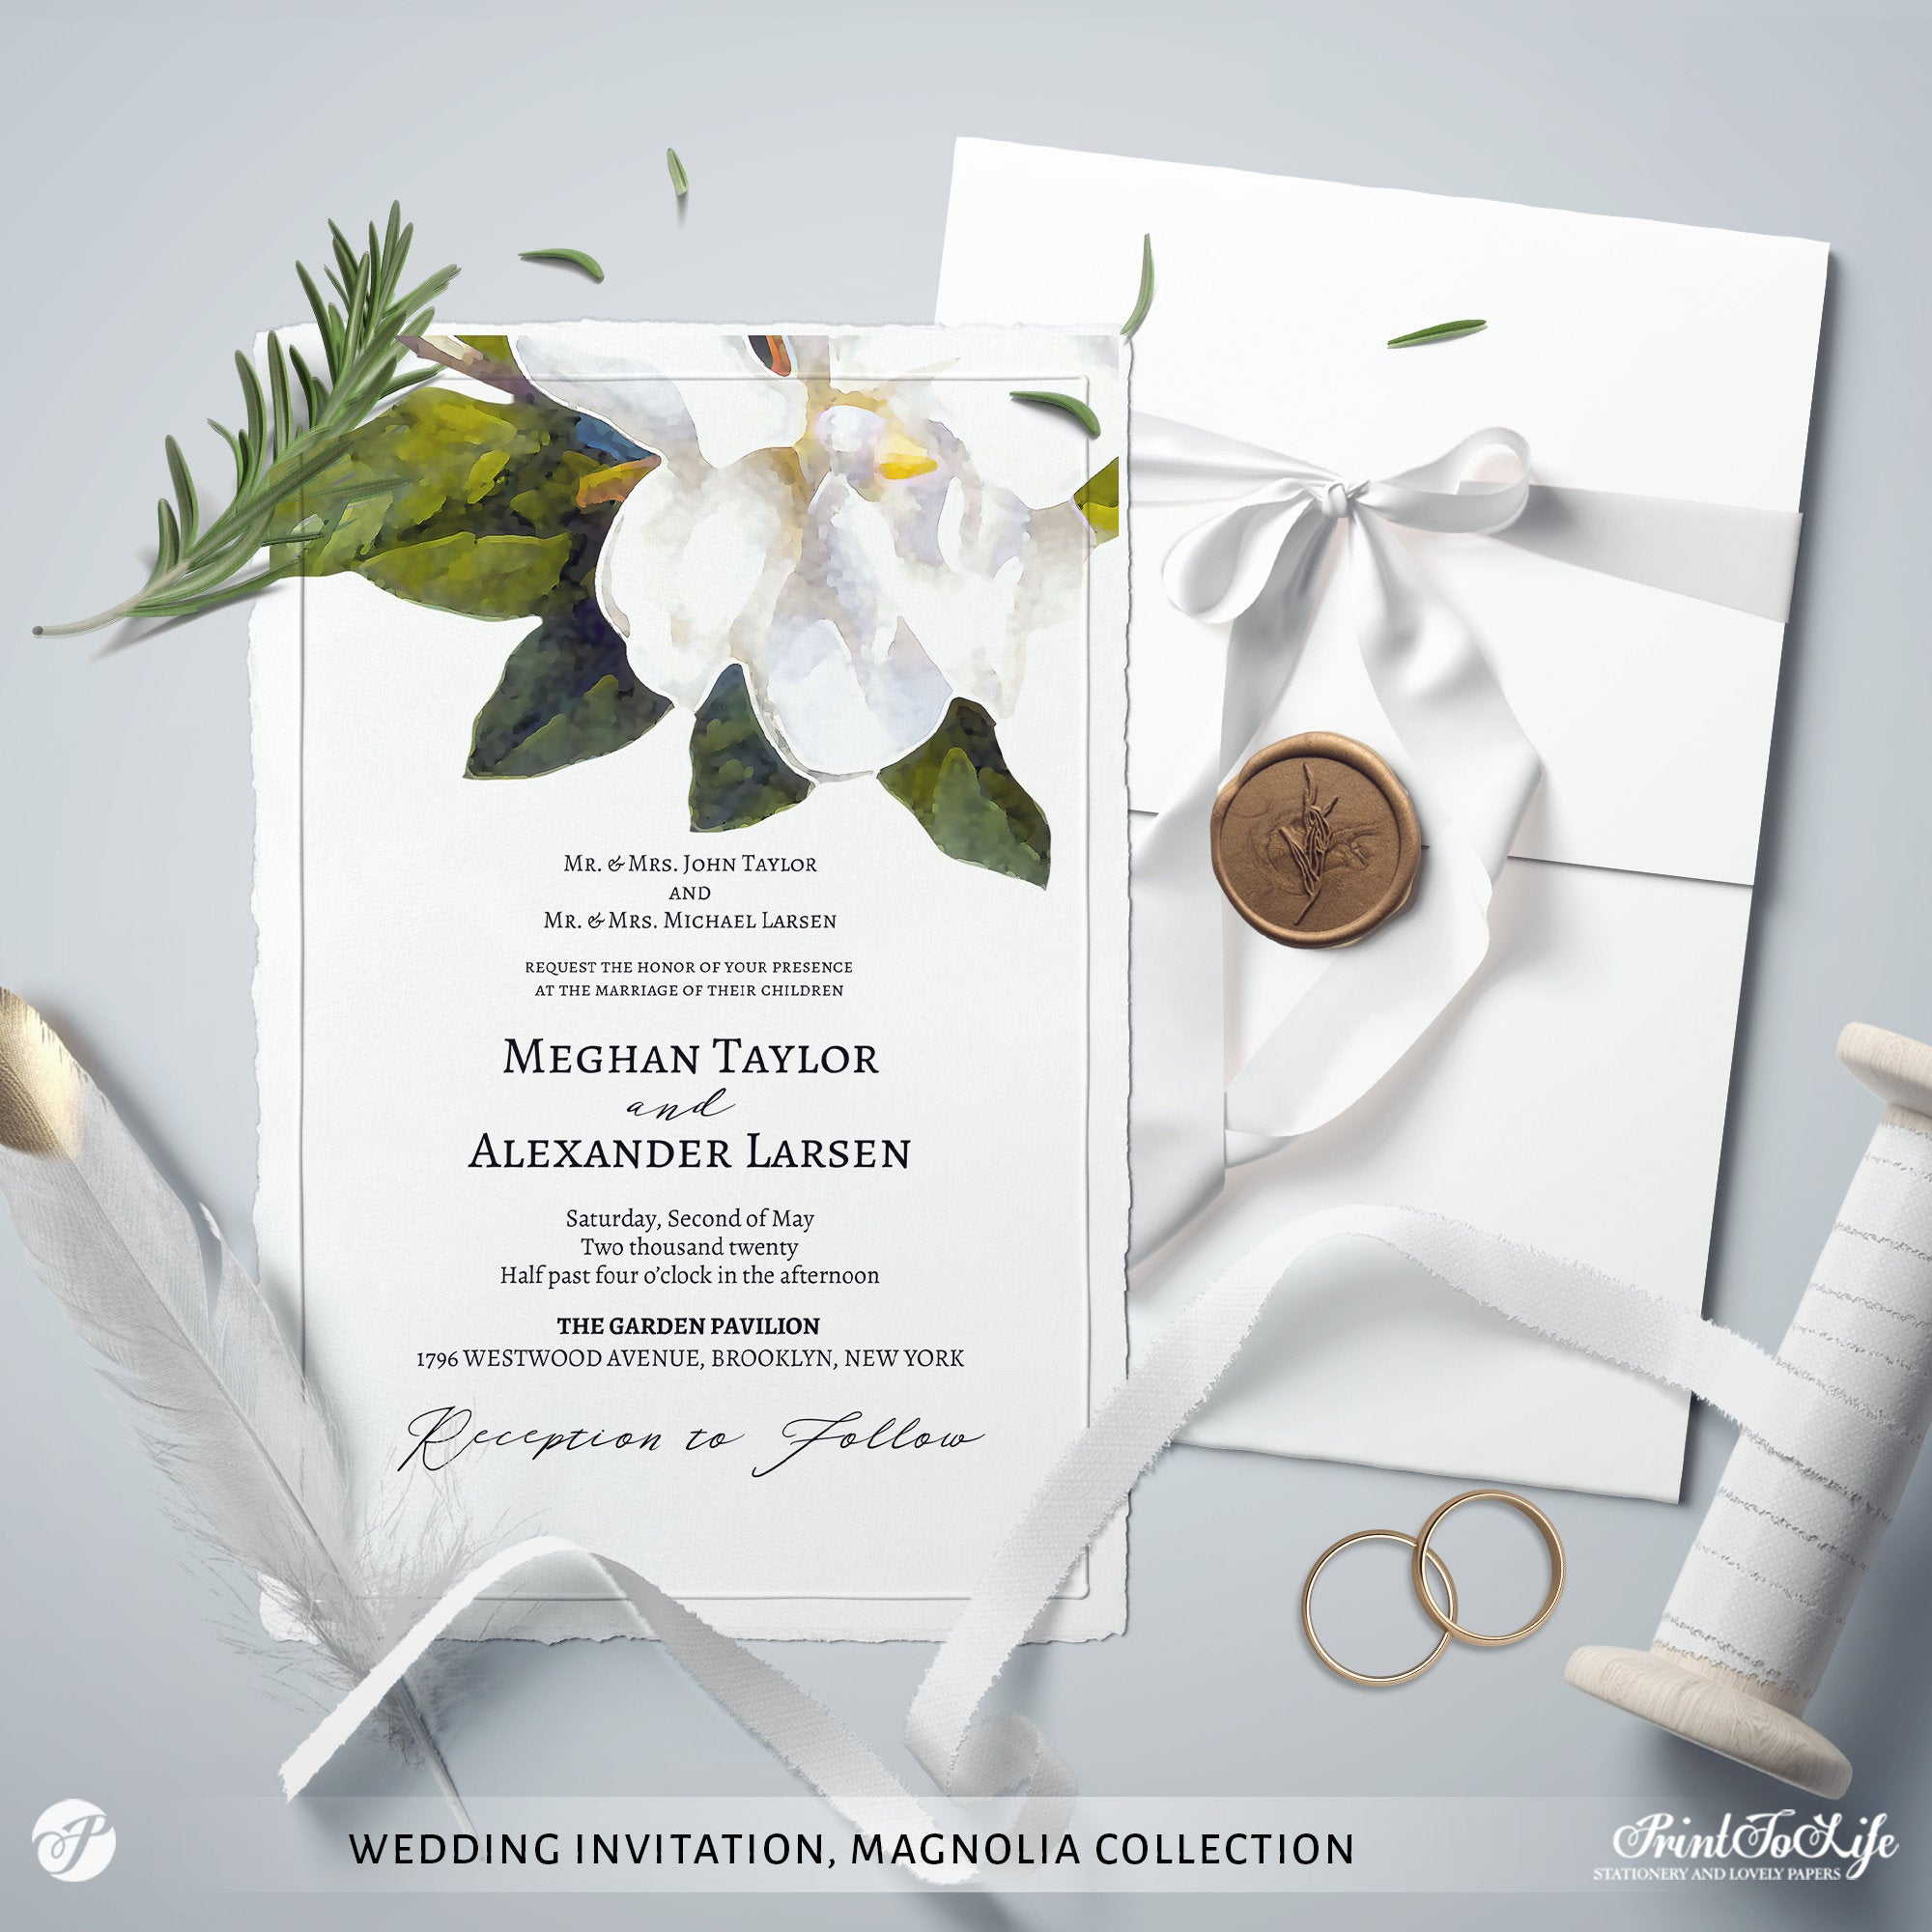 Magnolia Collection Wedding Suite